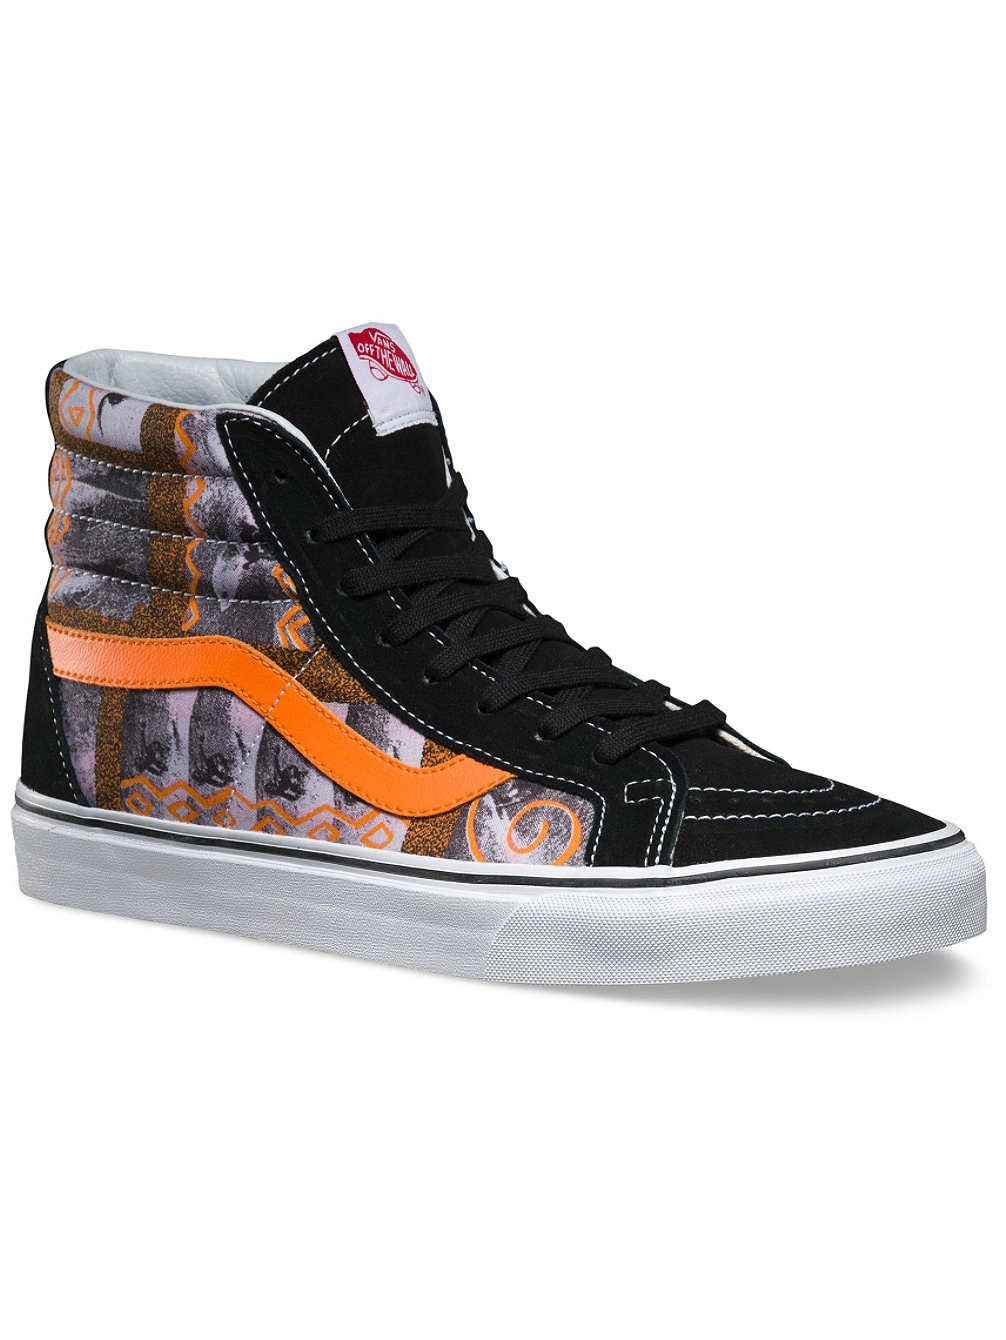 6ae29e0466 Galleon - Vans Sk8-Hi Reissue Doren Hoffman Black Ankle-High Fabric Fashion  Sneaker - 9M 7.5M